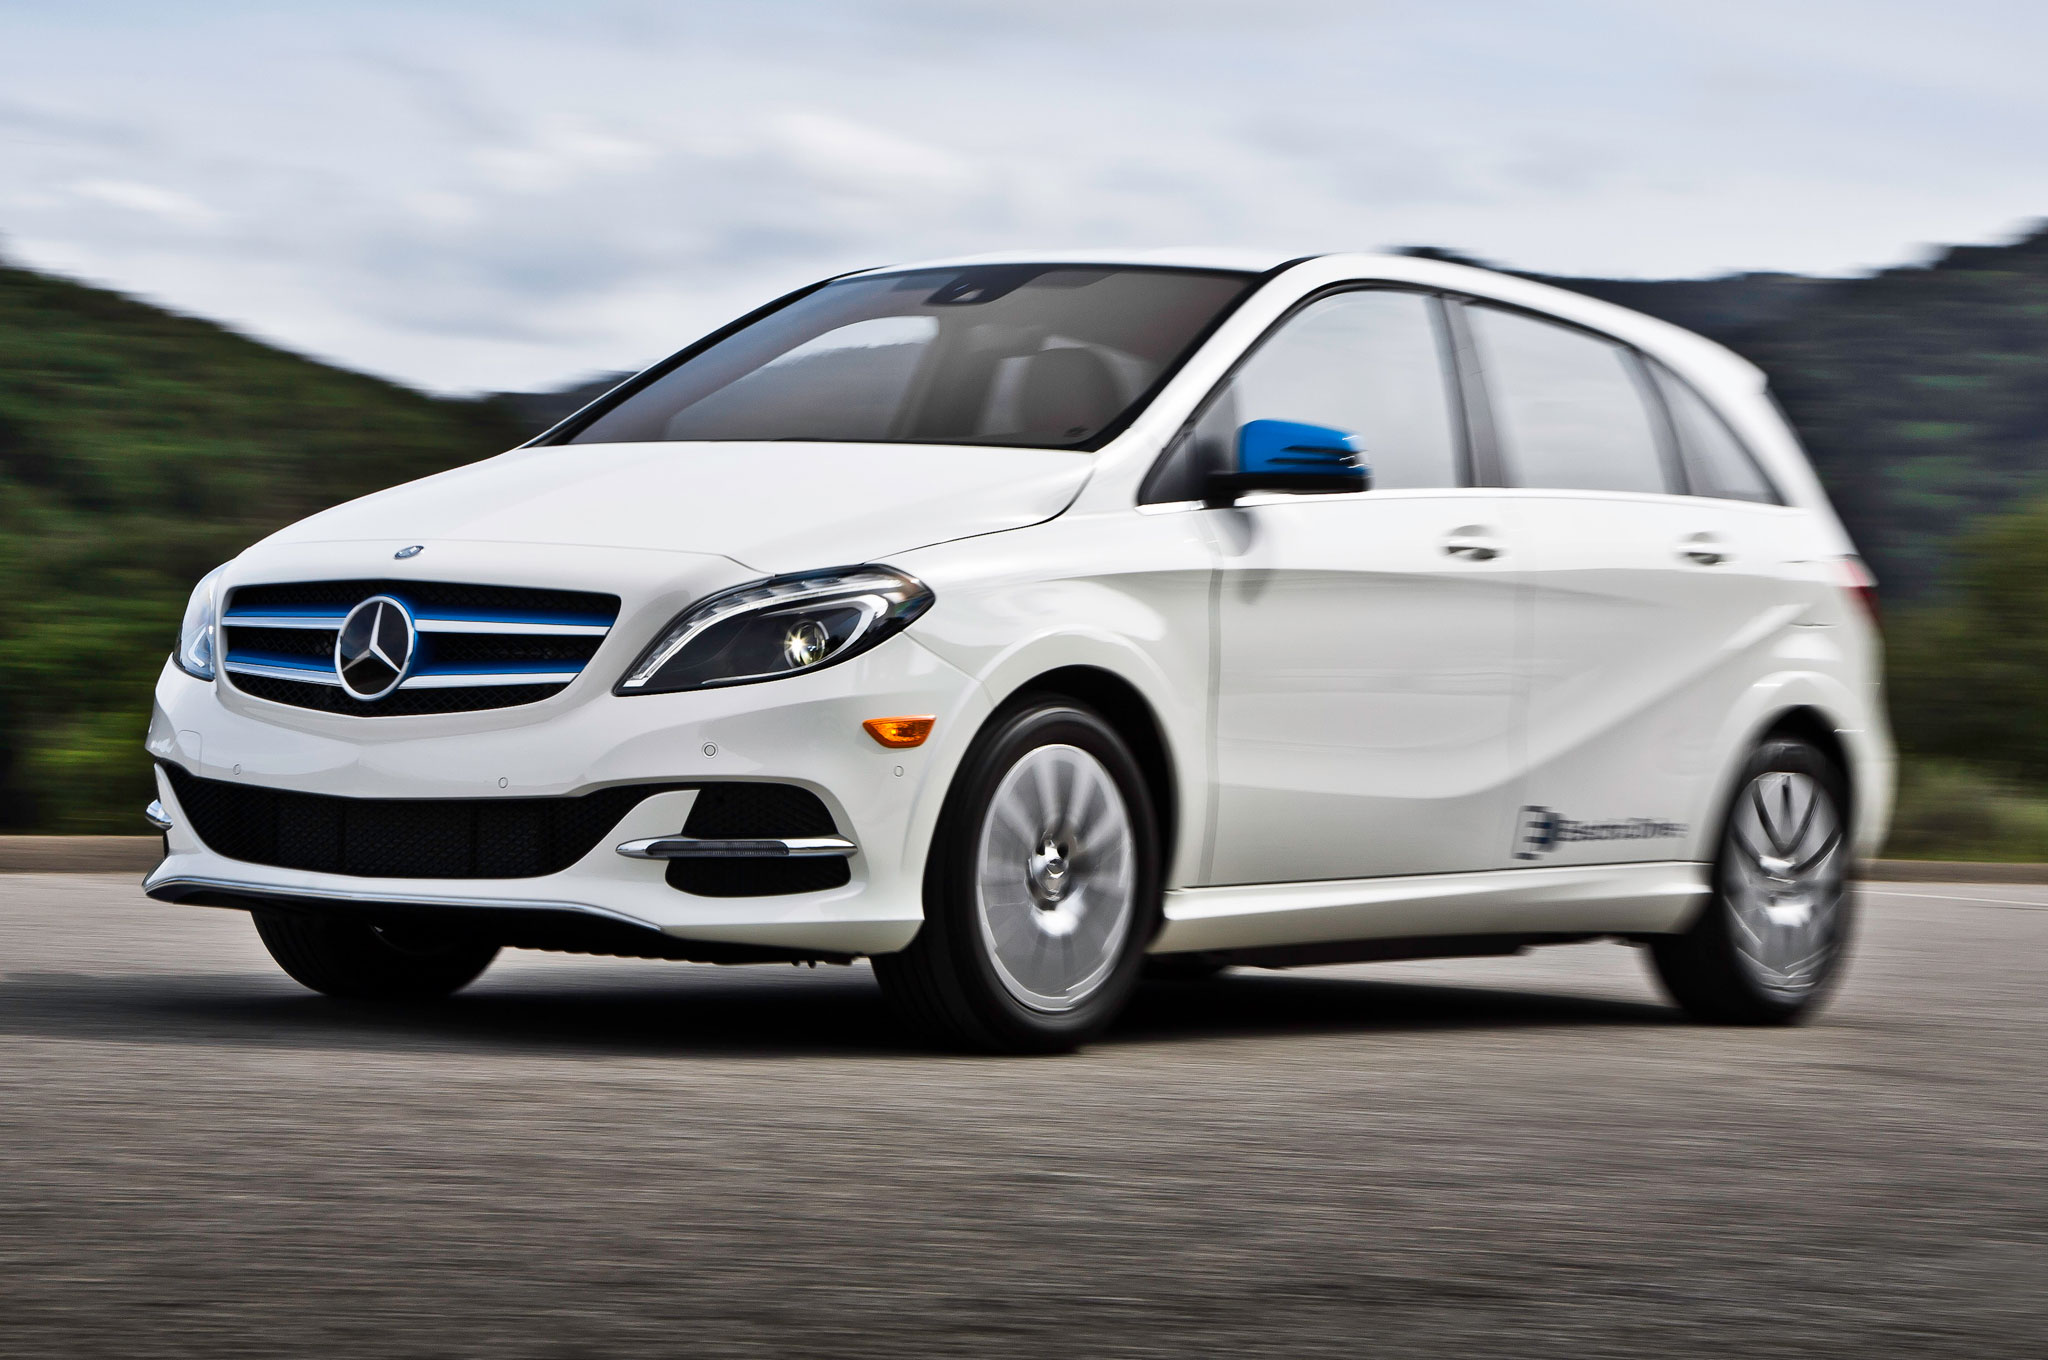 2014 mercedes benz b class electric drive costs 42 375 for Mercedes benz b class electric